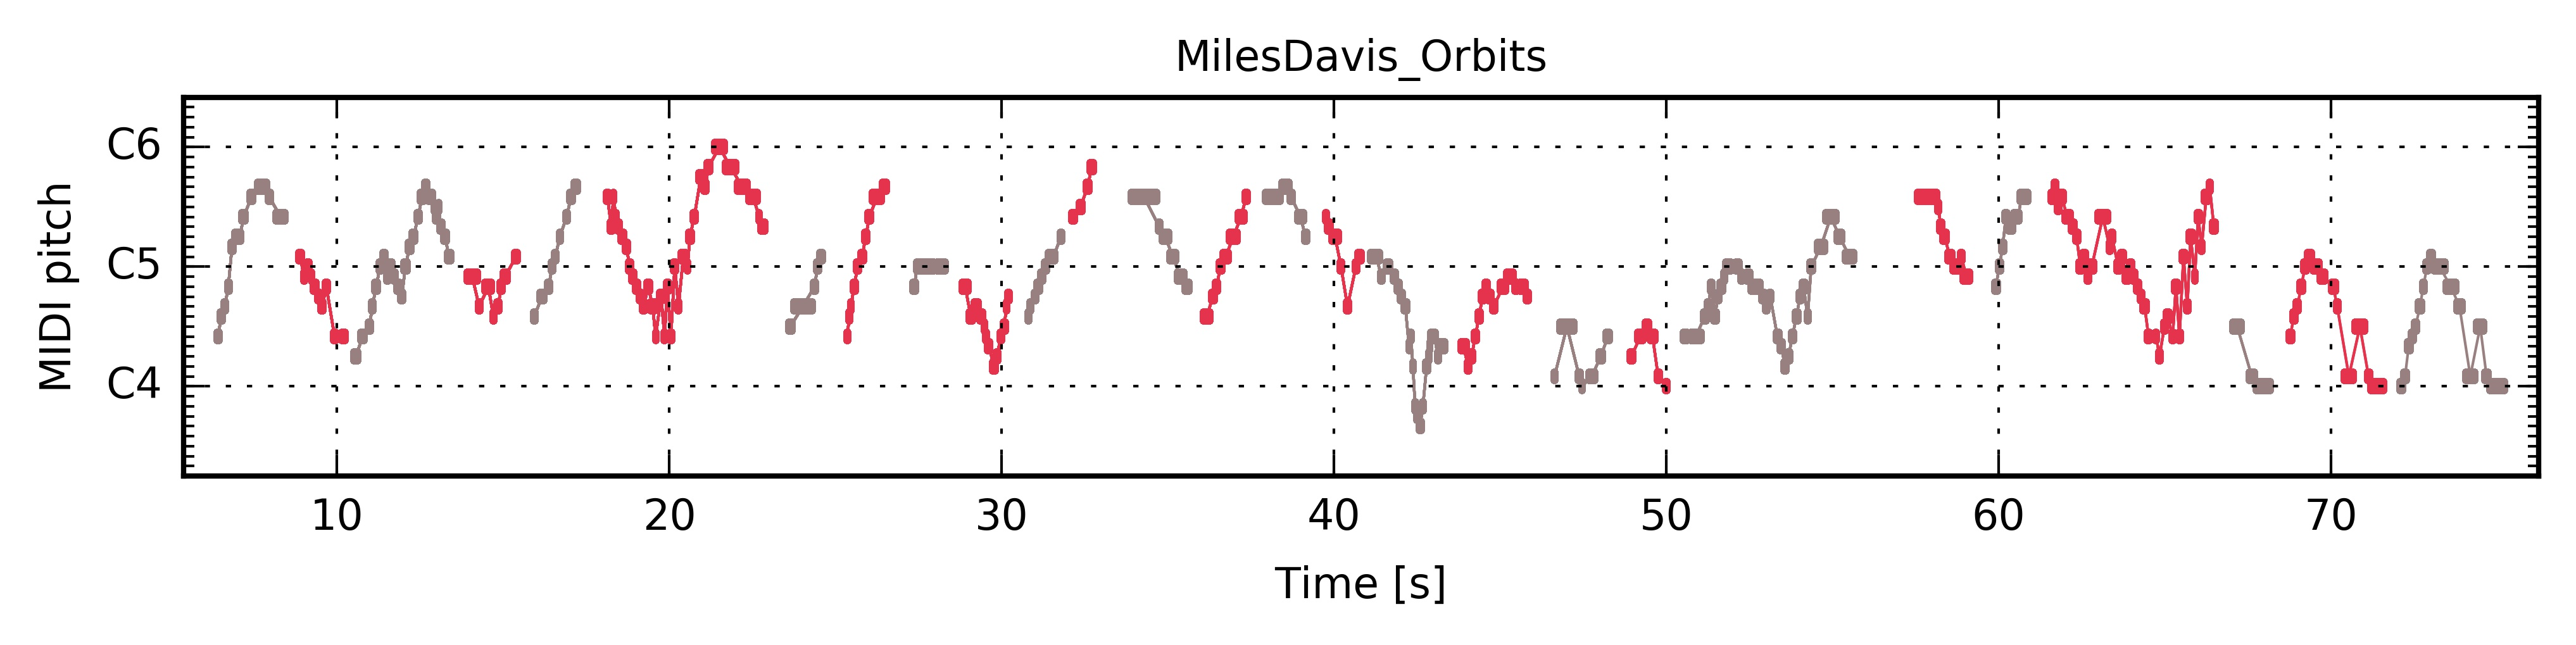 "Miles Davis ""Orbits"" — The Jazzomat Research Project"